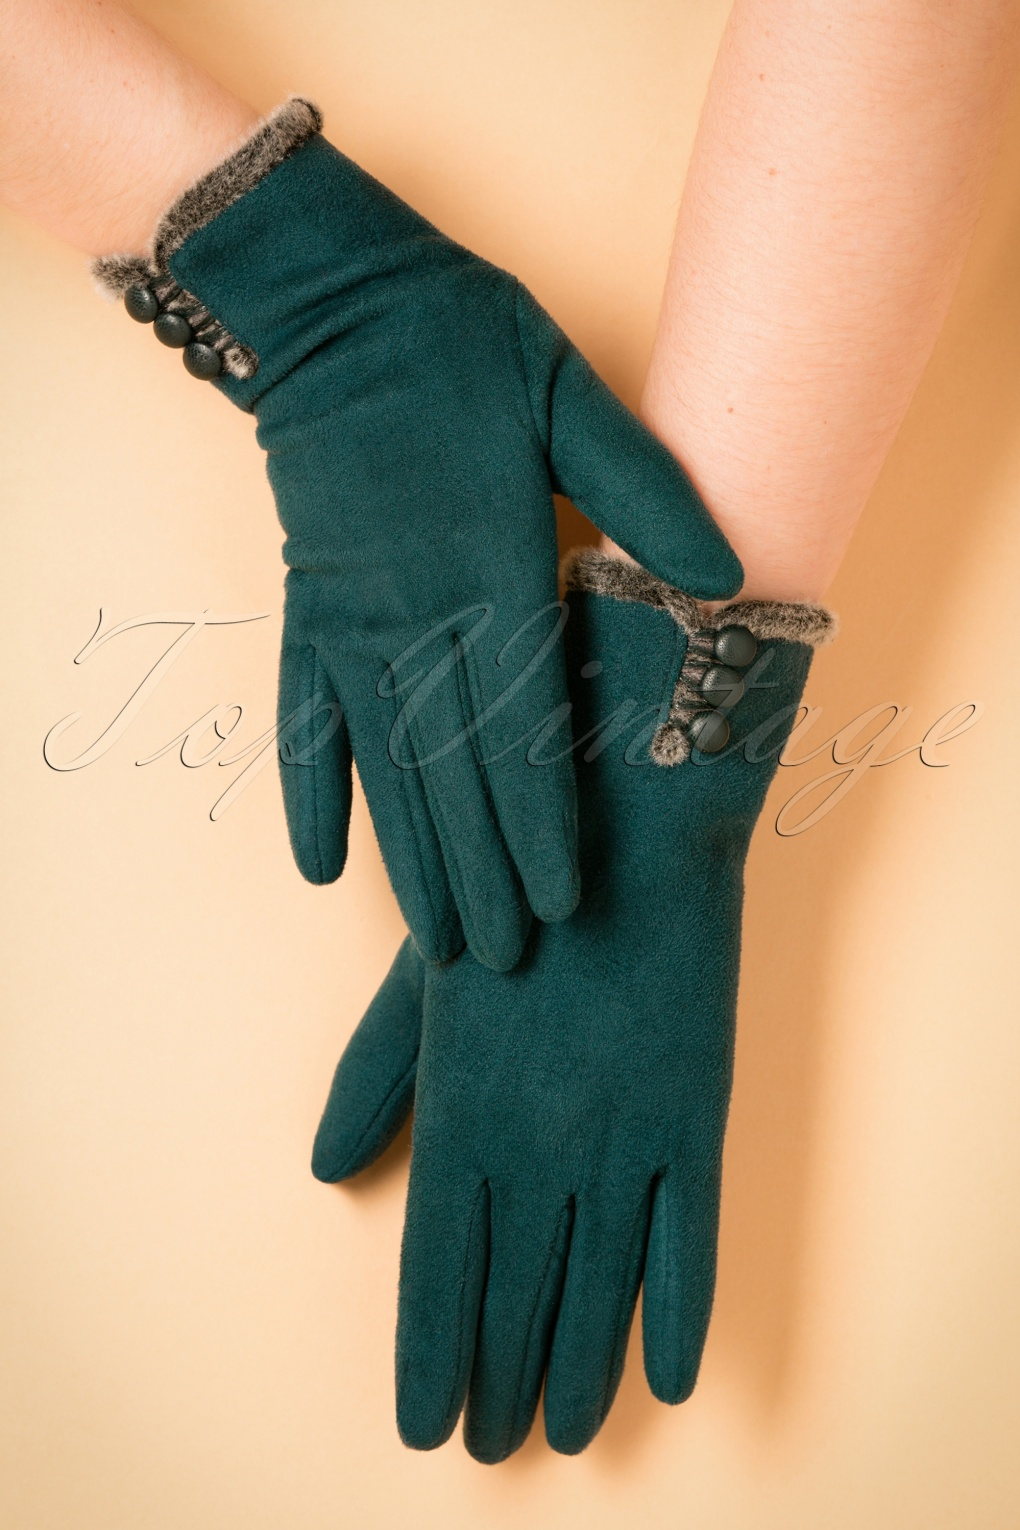 Vintage Style Gloves 40s Amanda Suedine Gloves in Teal £30.54 AT vintagedancer.com